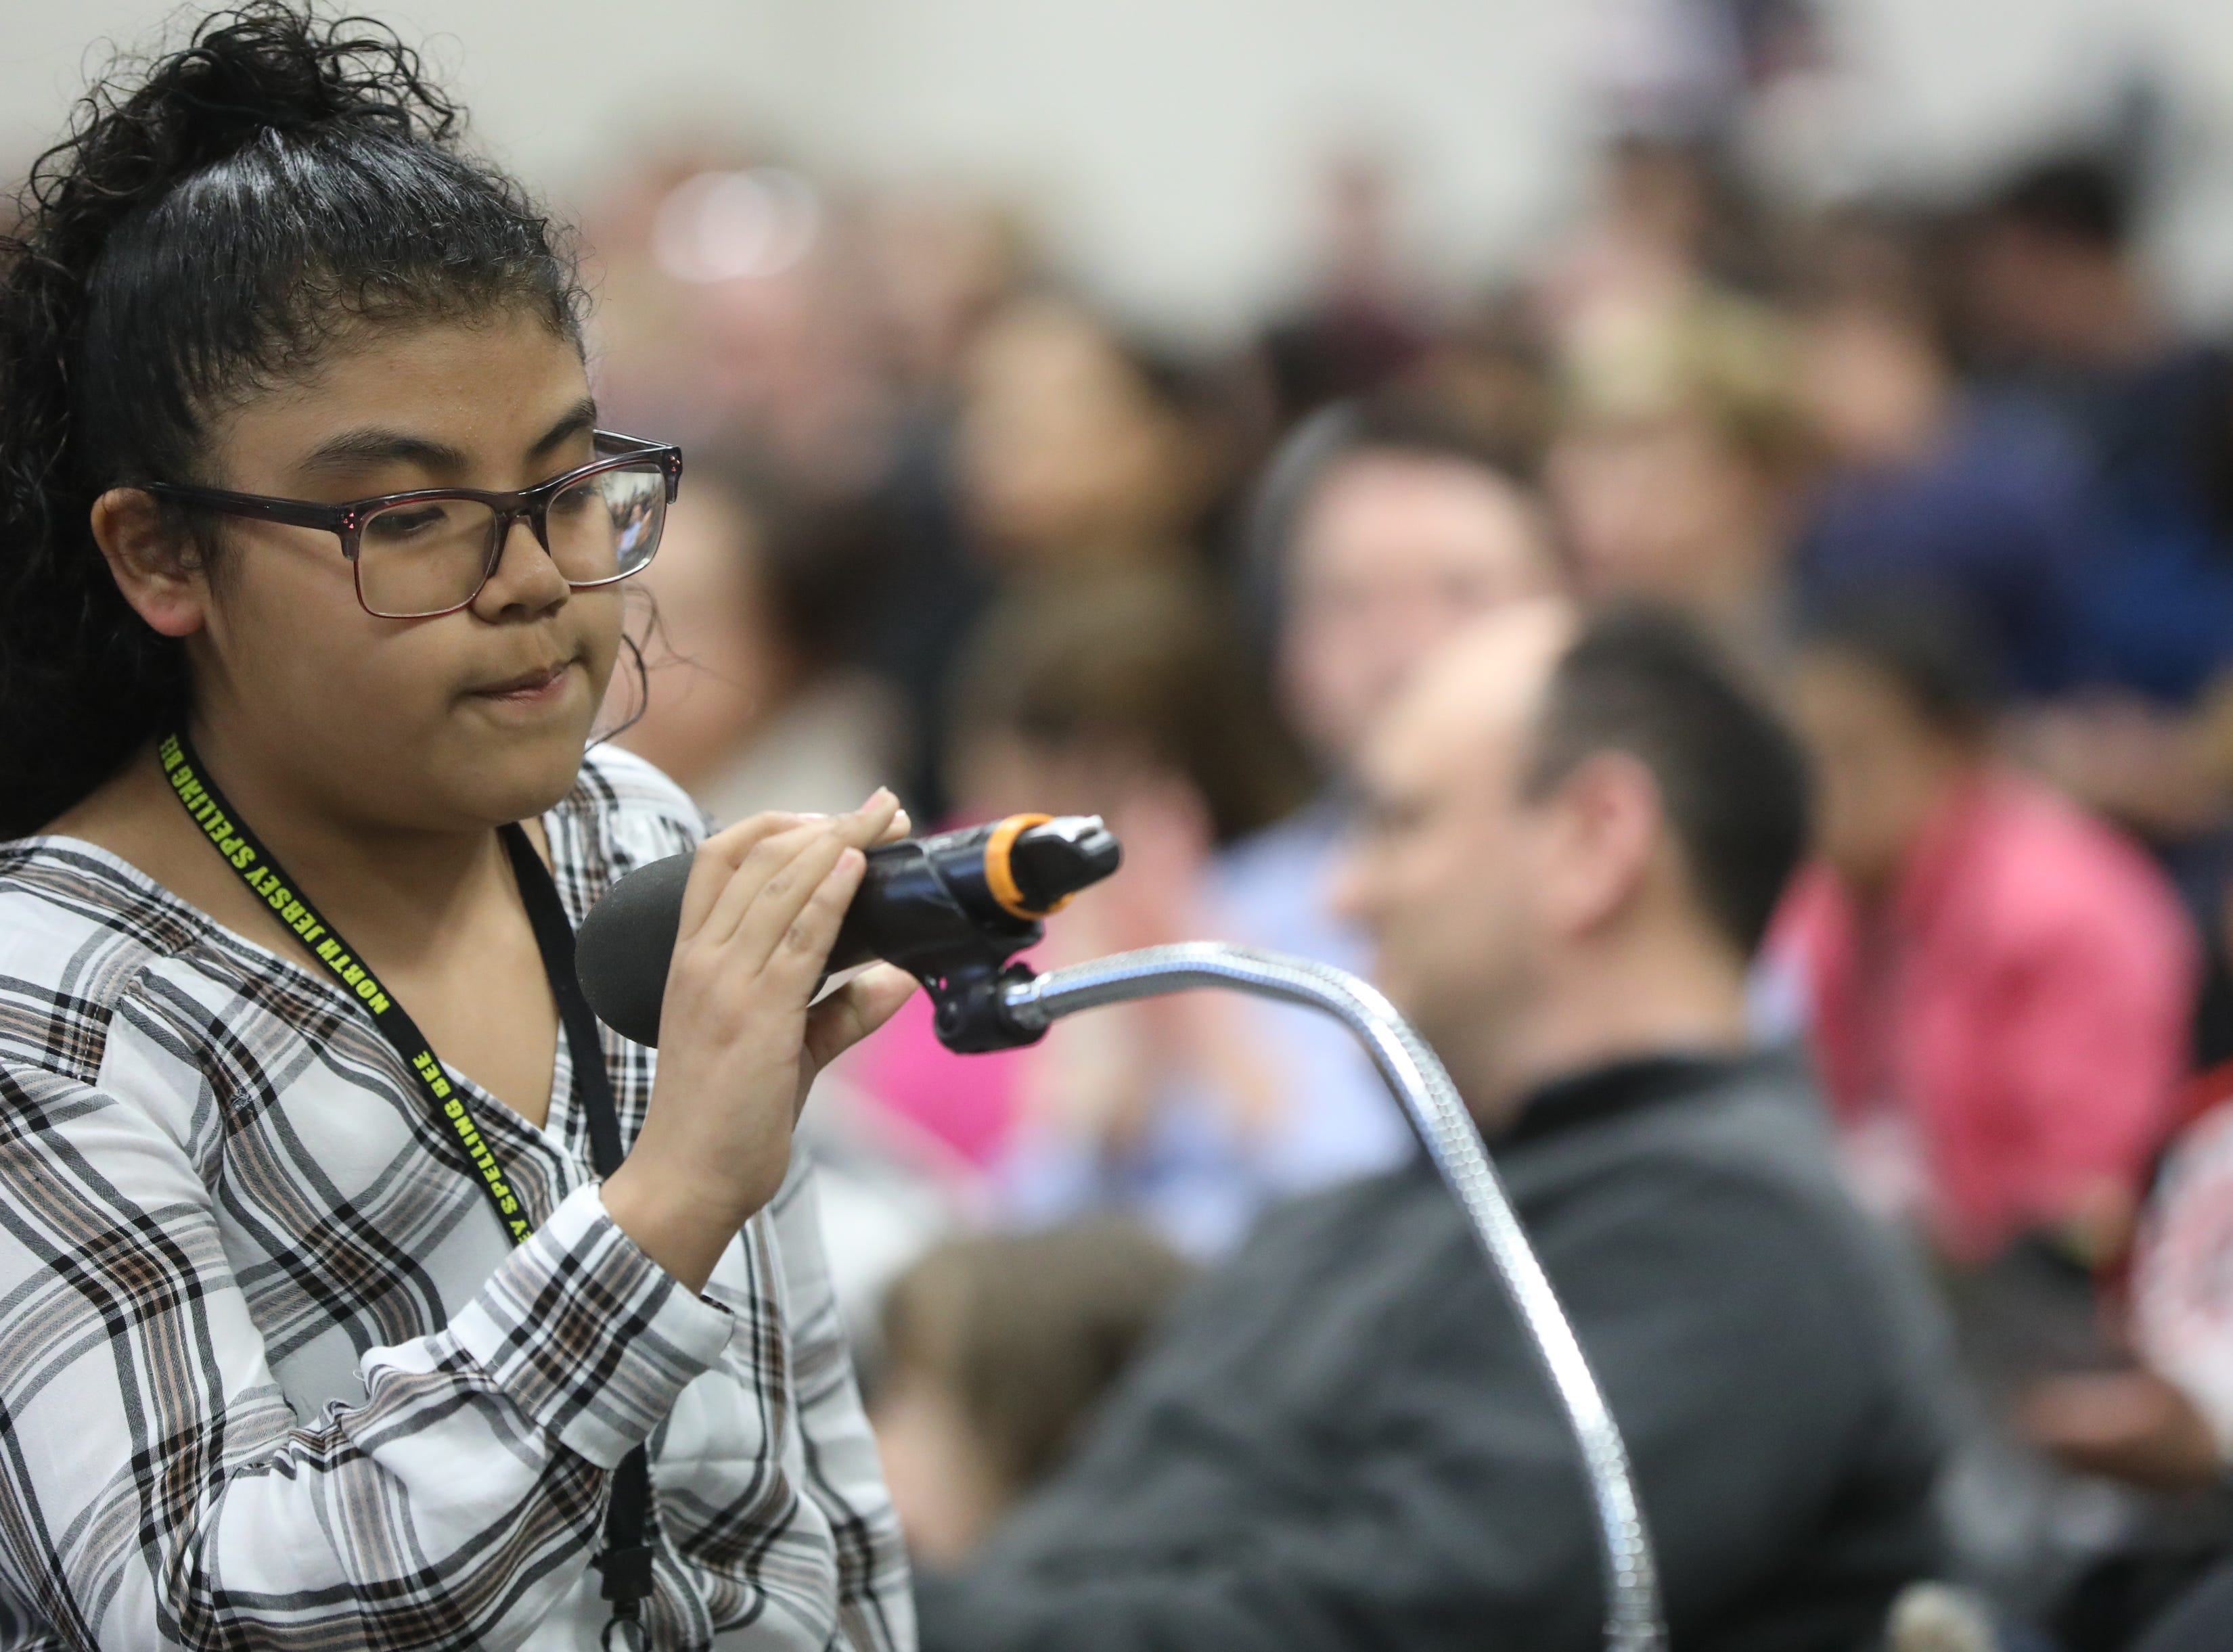 Natalia Delgado, of Paterson, competes in the first round of the 2019 North Jersey Spelling Bee, in Paramus. Thursday, March 14, 2019